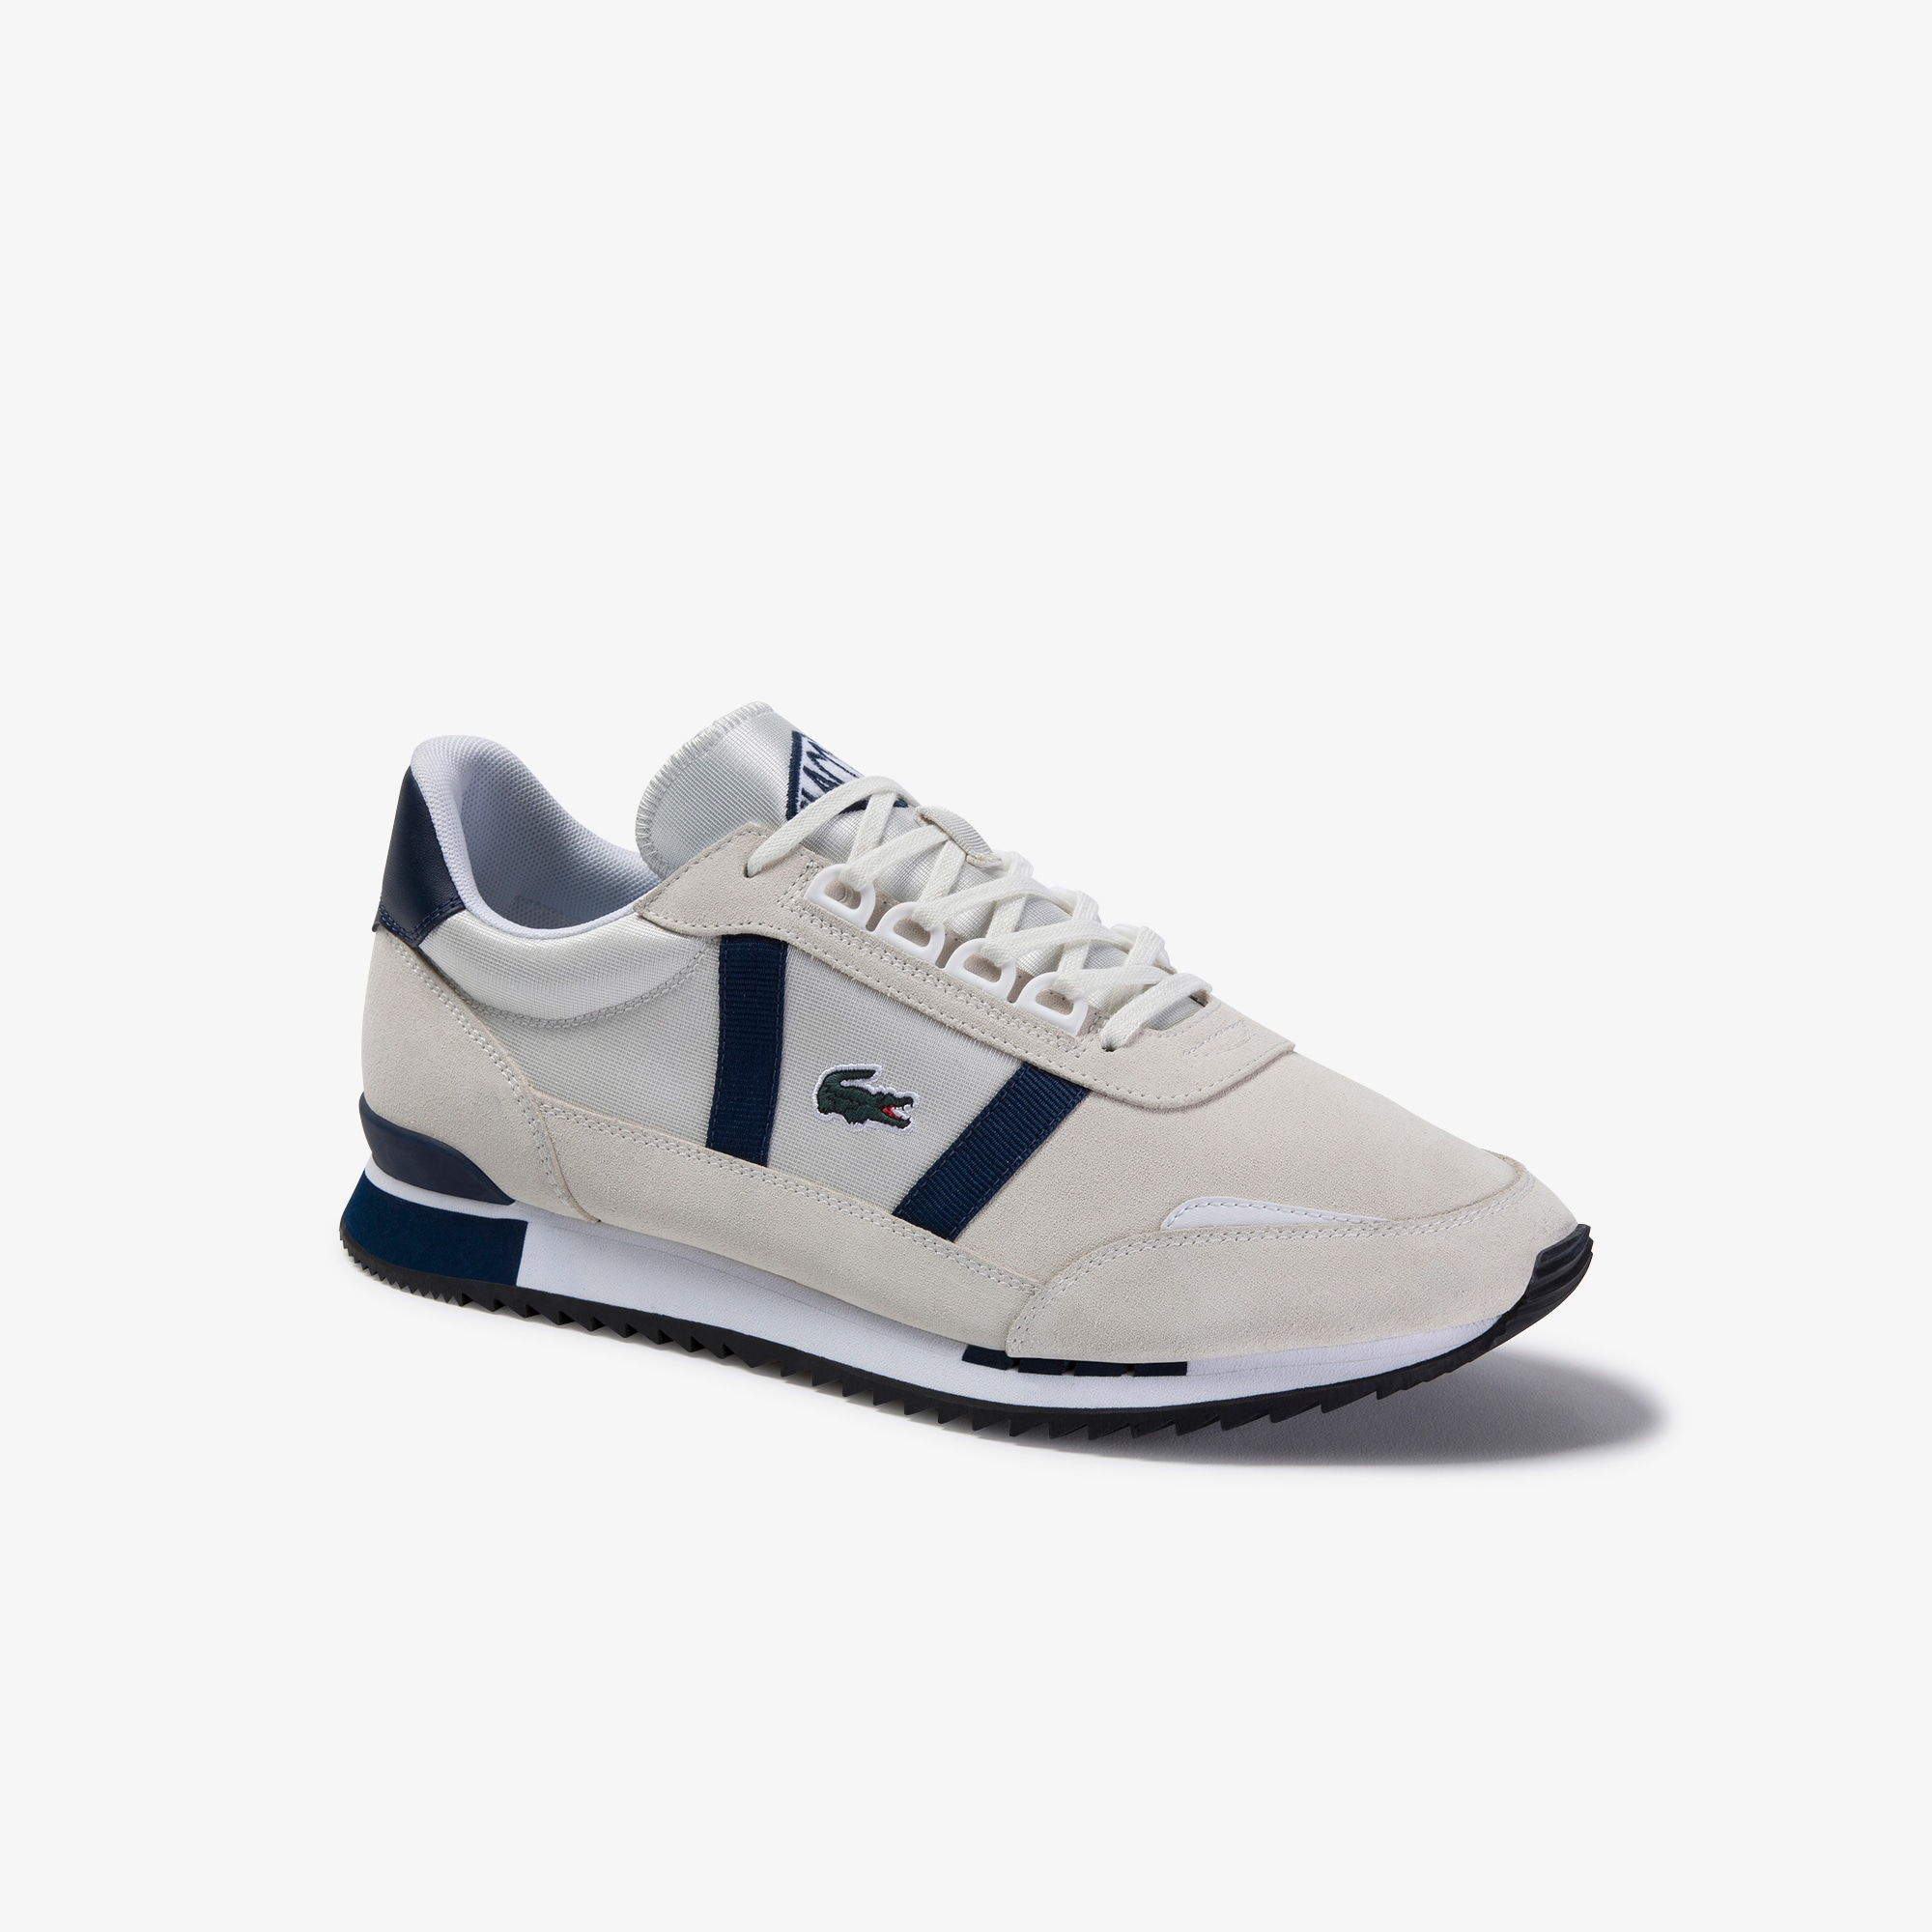 Men's Partner Retro Textile Trainers